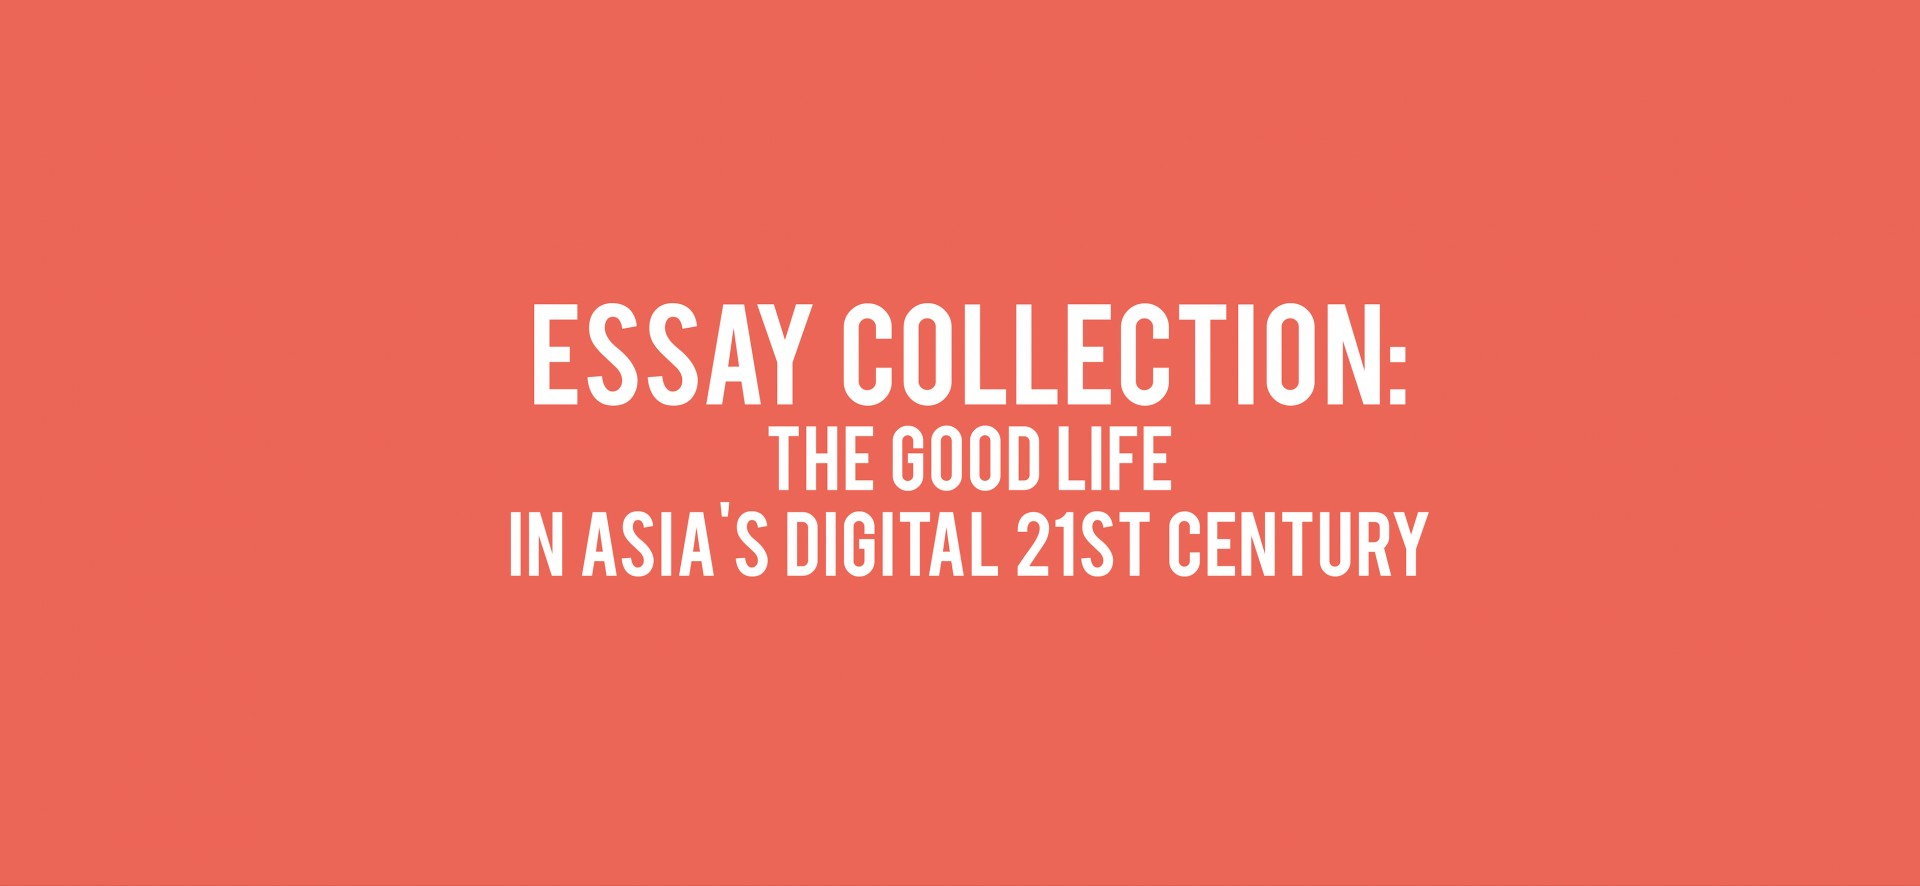 027 Essay Collection Untitled Shocking Collections For Students 2017 Best Pdf 1920